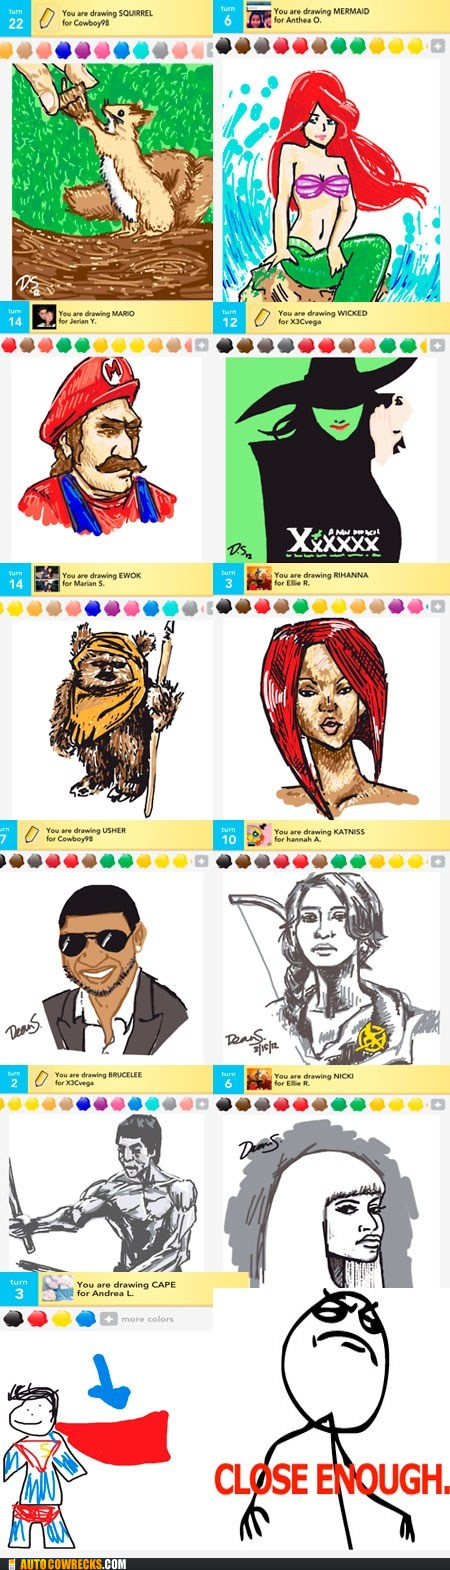 Can You Draw Something Better?